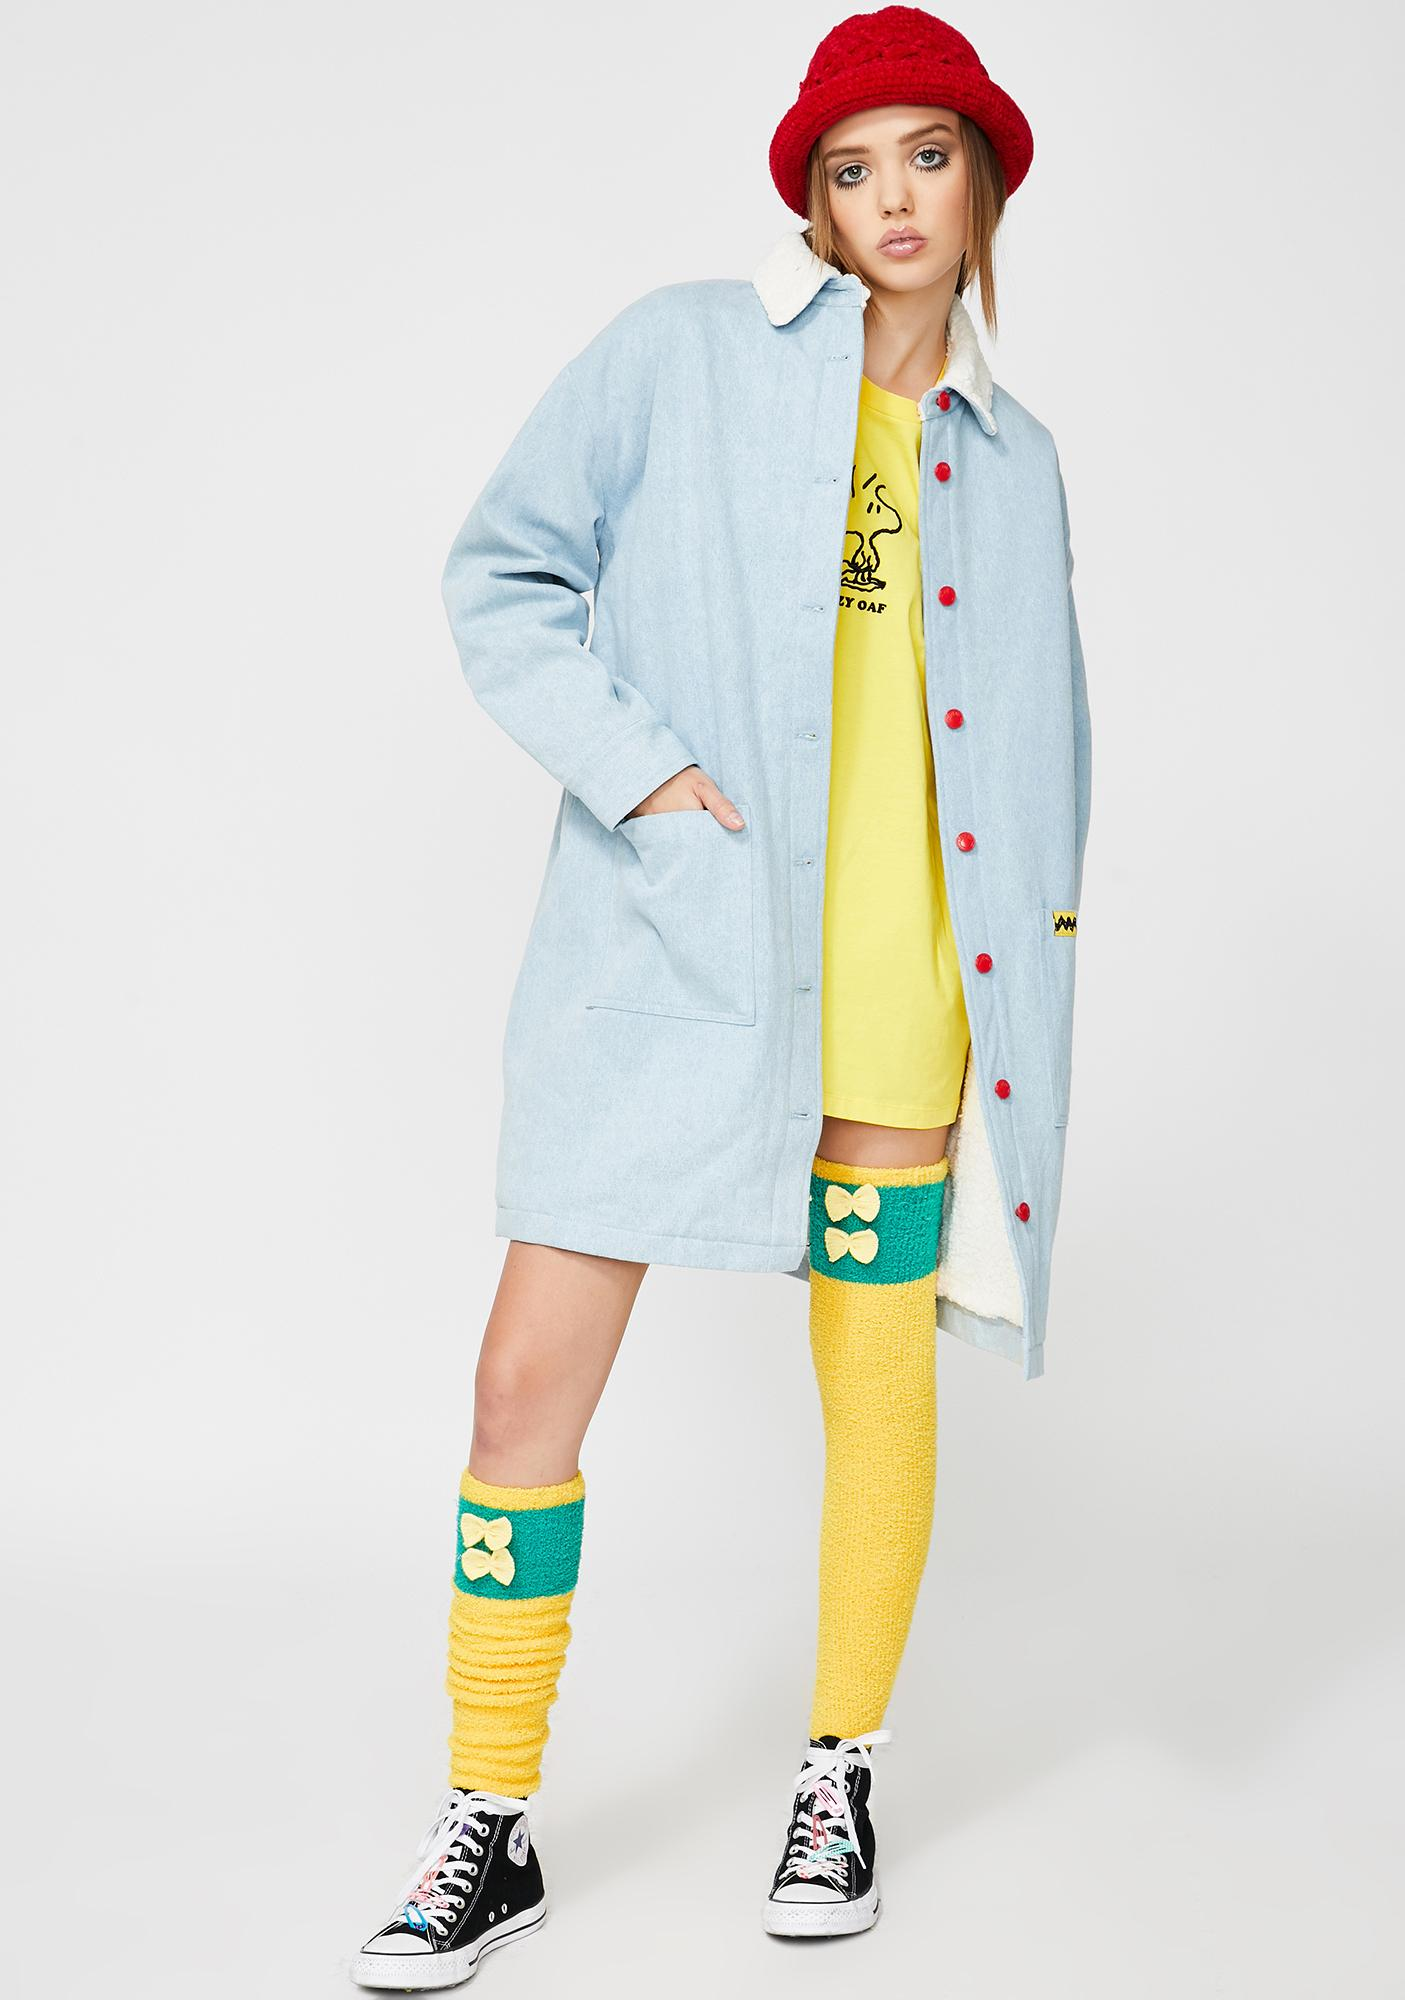 Lazy Oaf x Peanuts Fleecy Denim Jacket